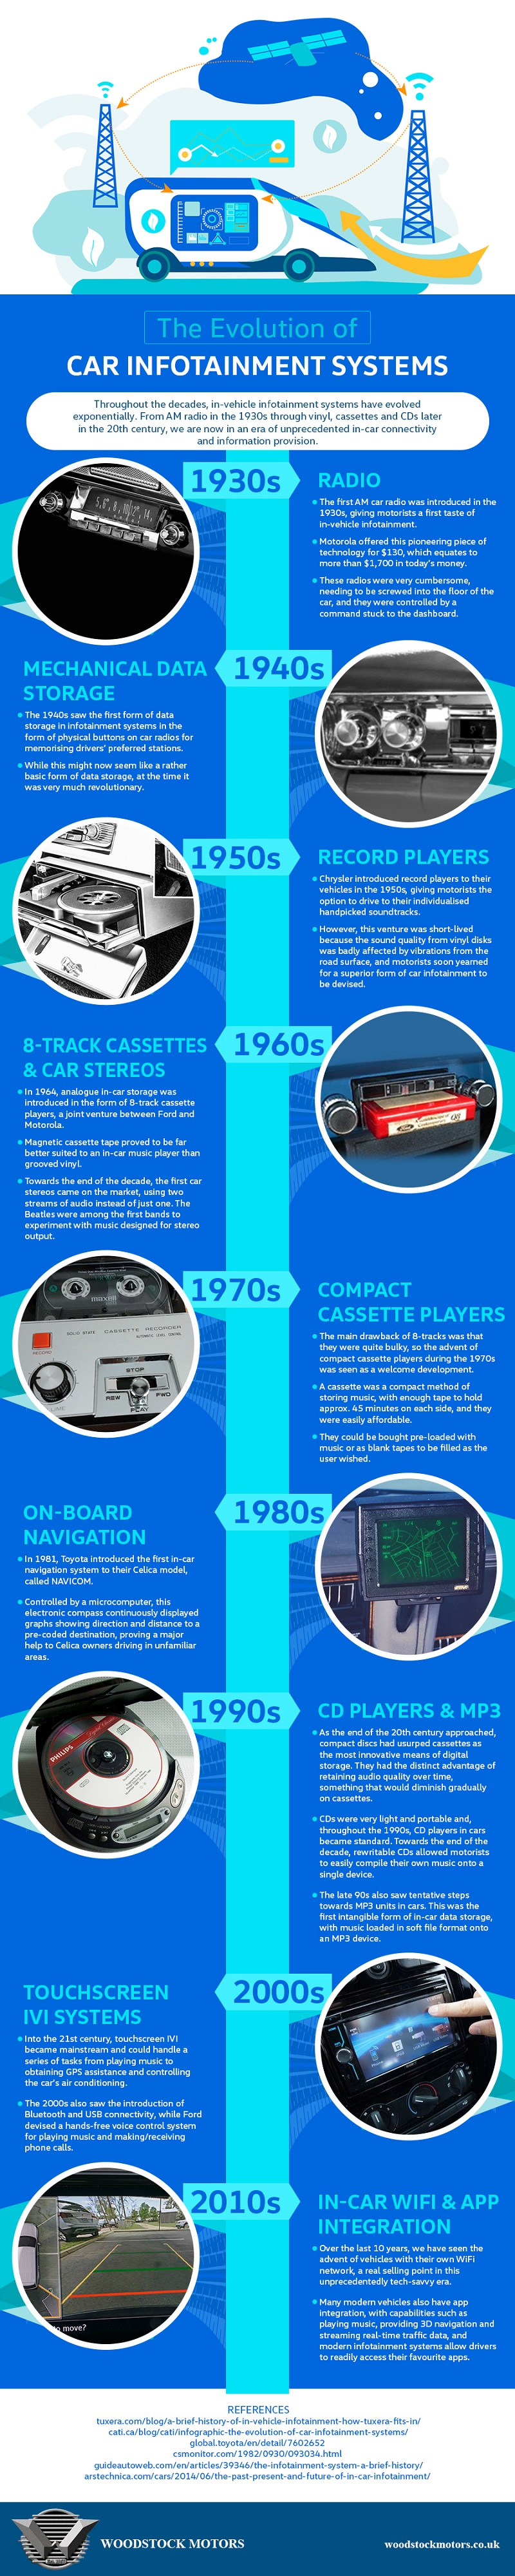 Evolution of Car Infotainment Systems Infographic